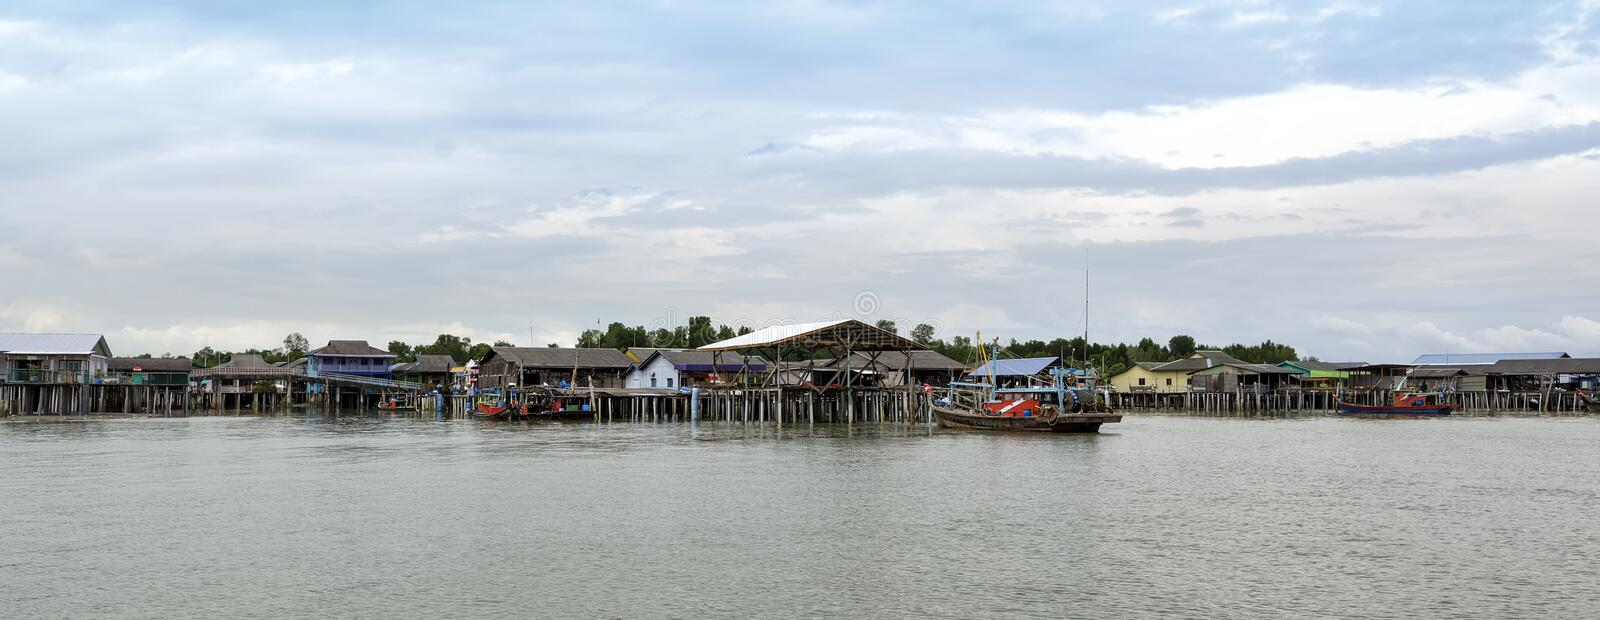 A view of a fishermen`s village besides the sea at Bagan Sungai Lima of Pulau Ketam Crab Island, Malaysia. stock photography